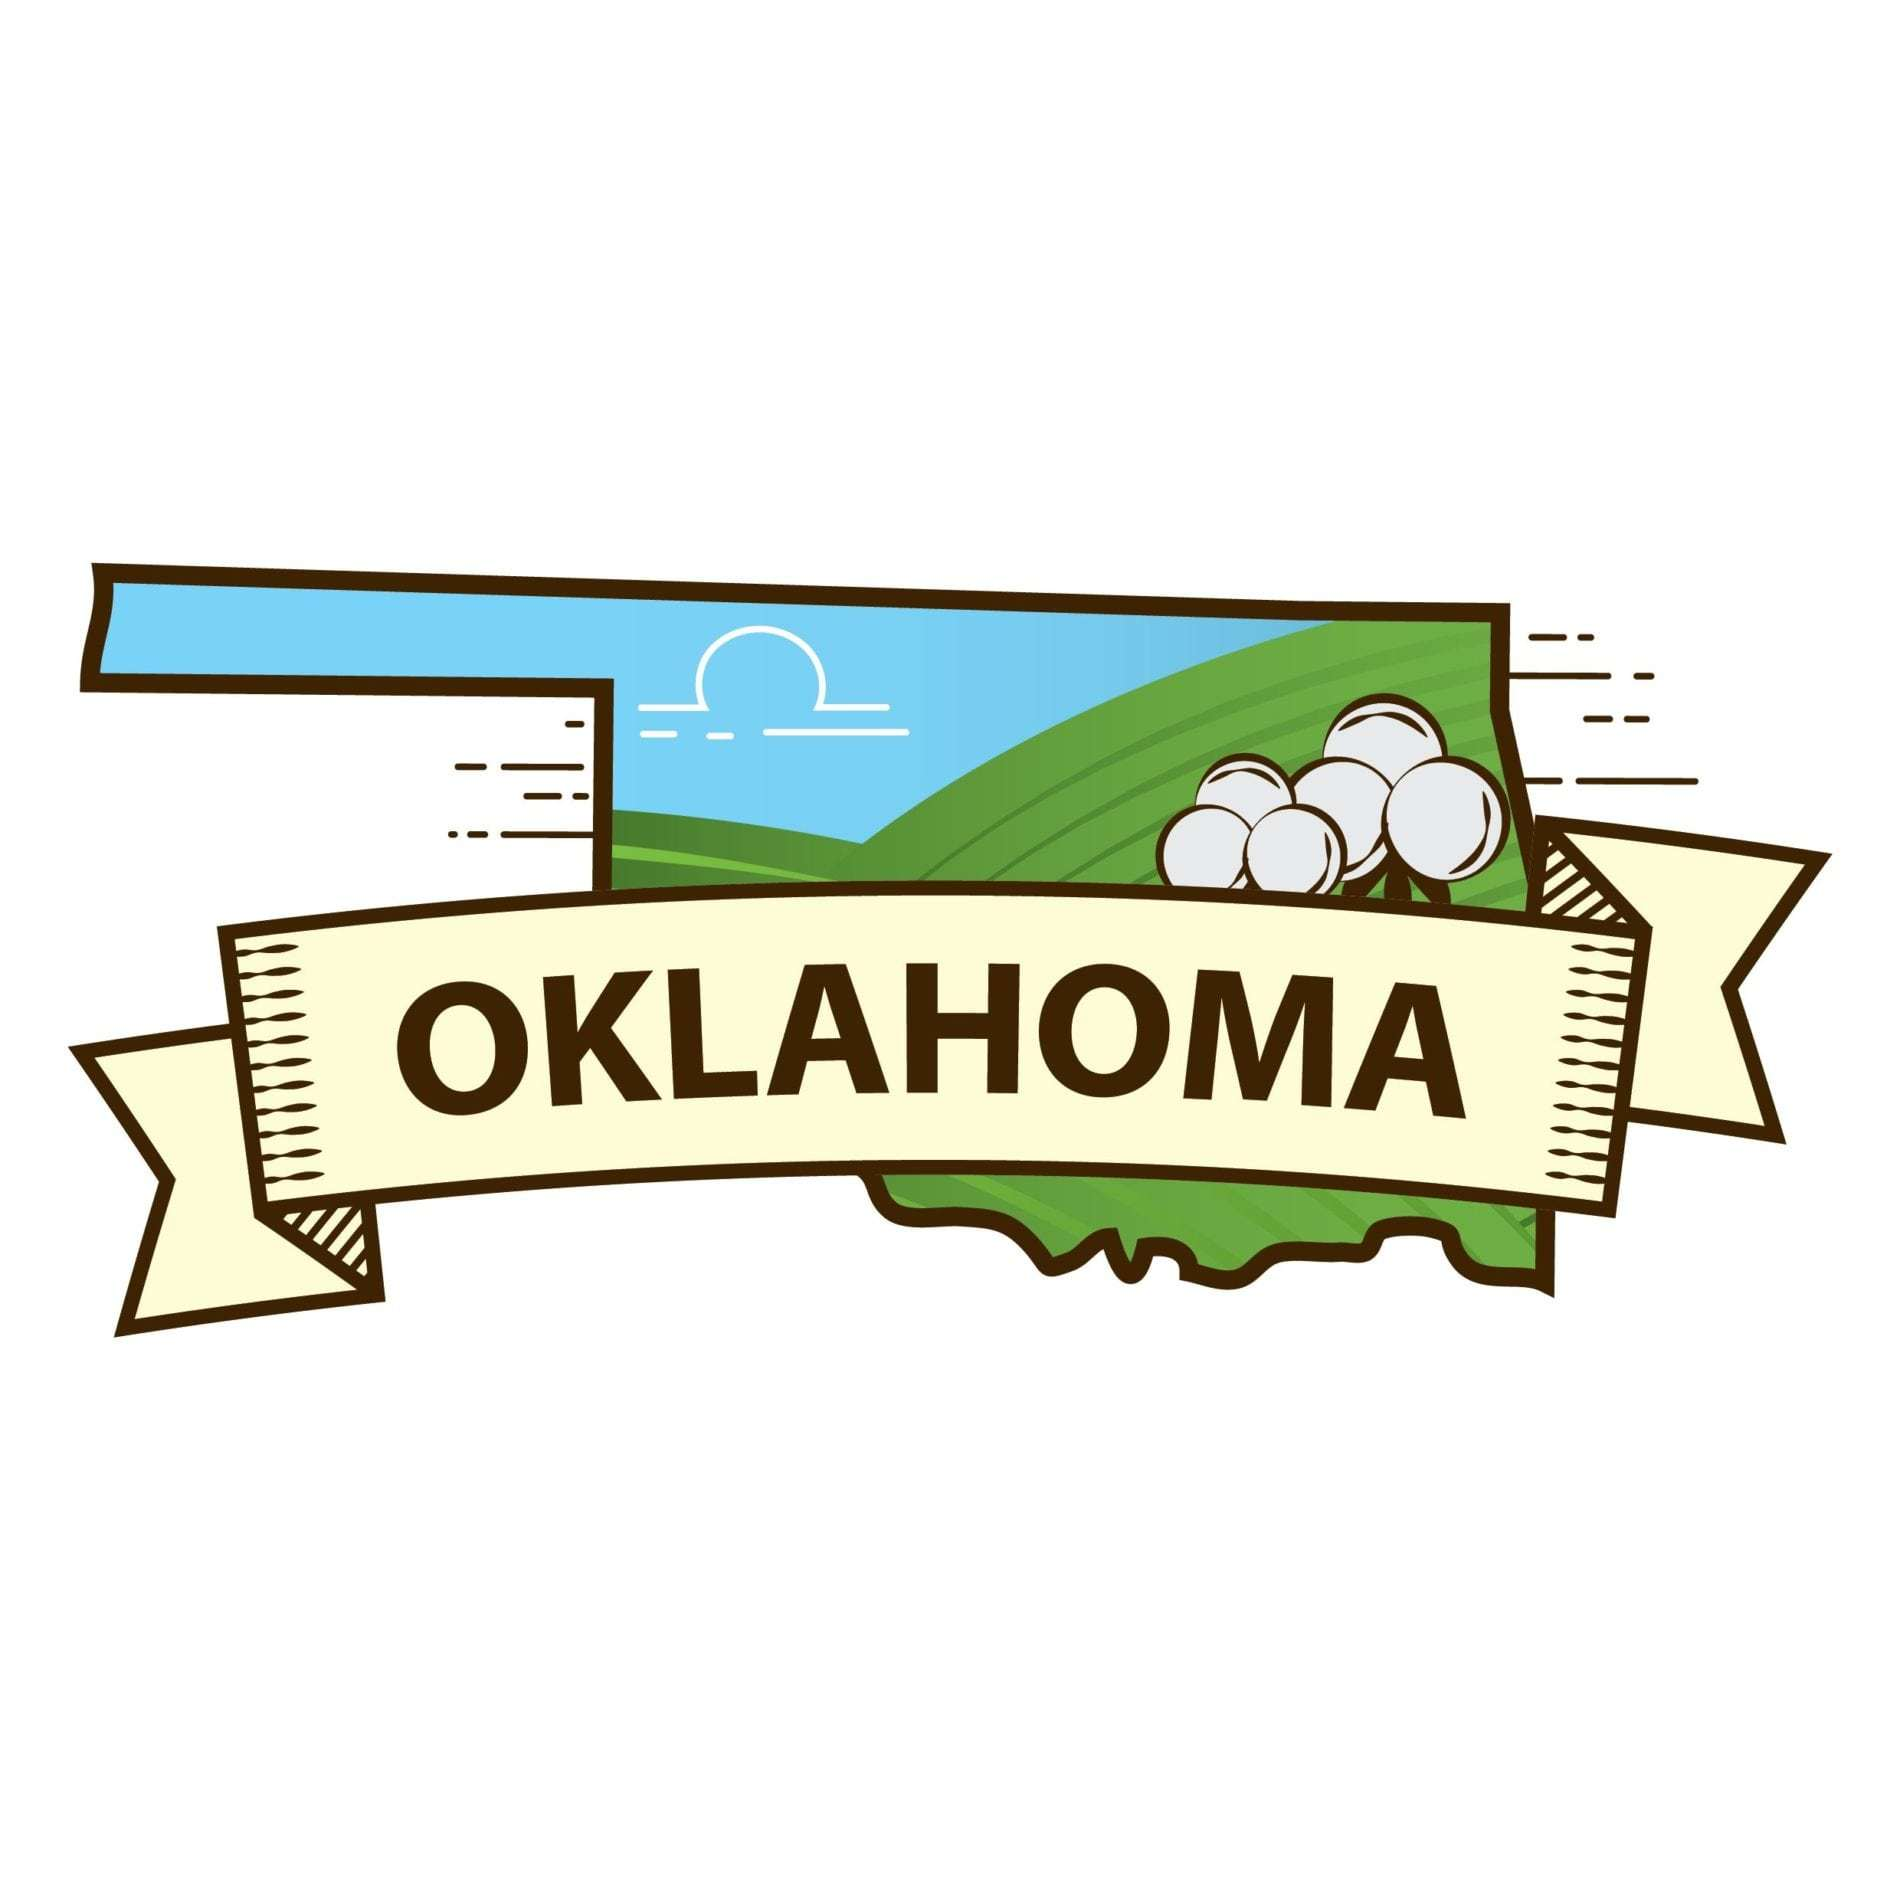 oklahoma image - JMARK Employees Assist in Oklahoma Disaster Relief